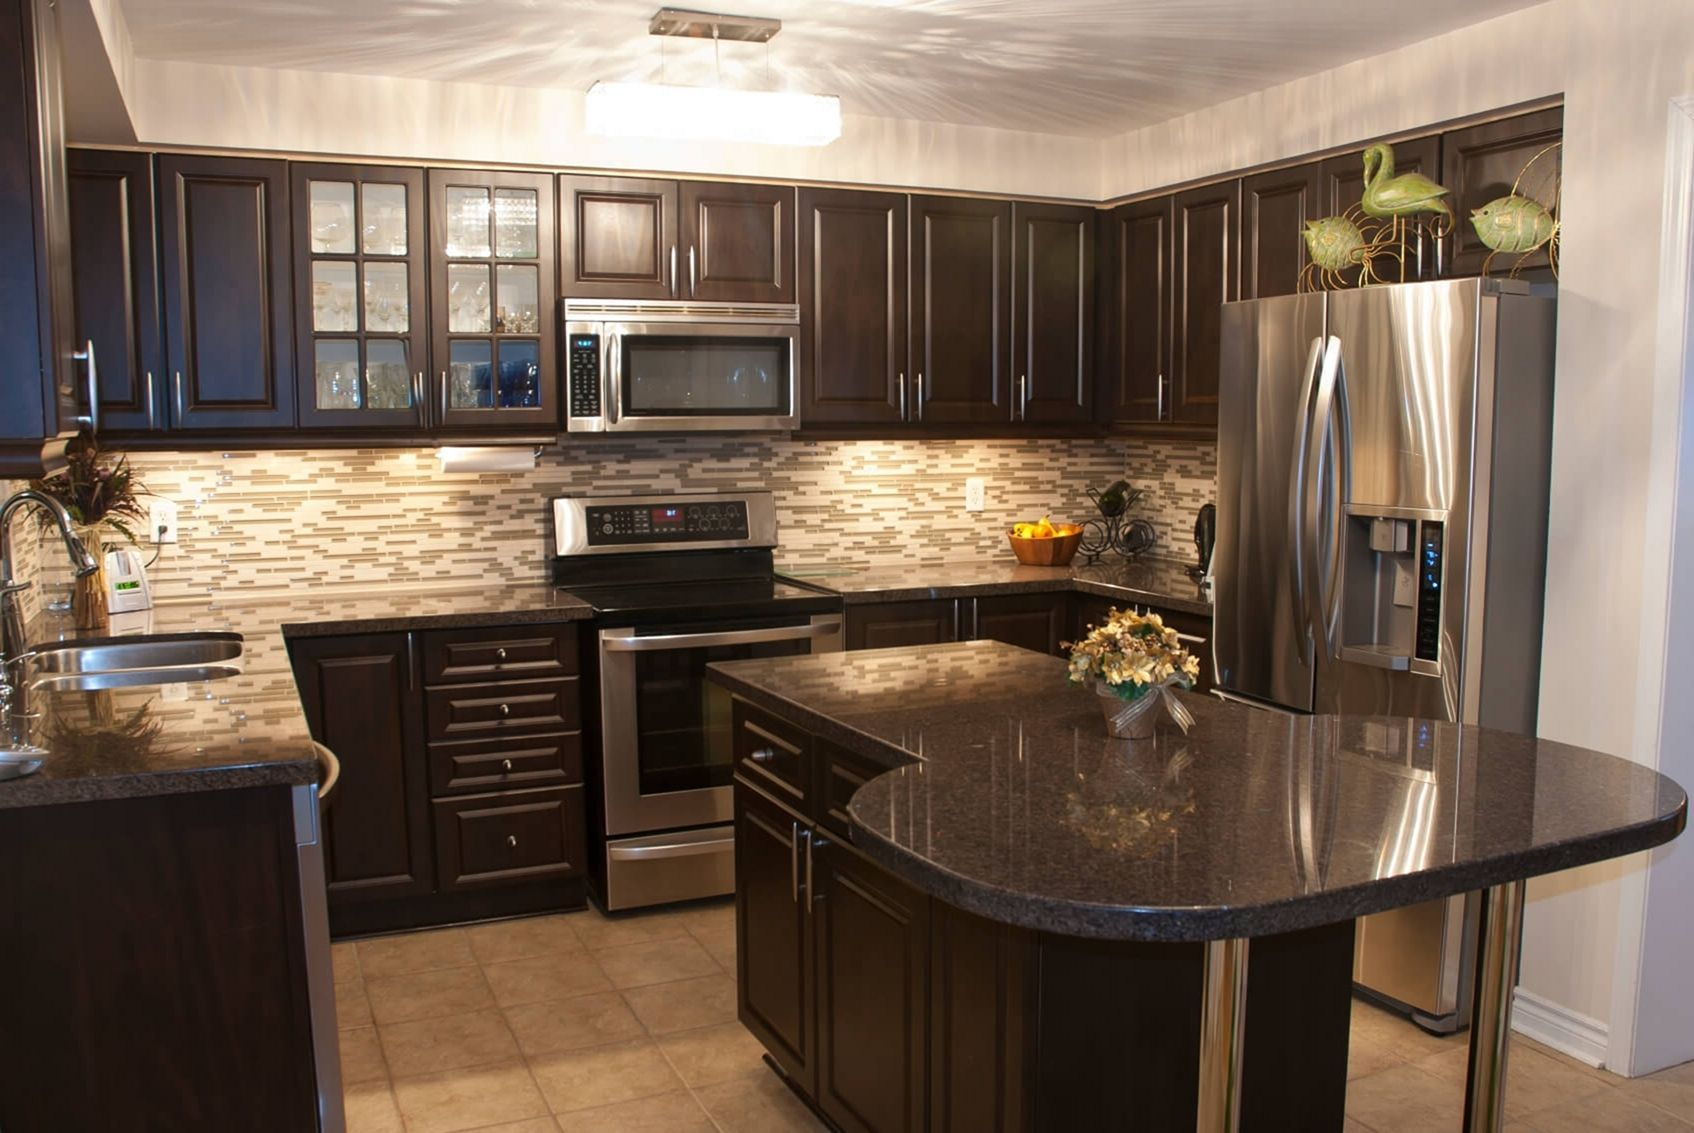 29 Fabulous Kitchen Design Ideas With Dark Cabinets That ...